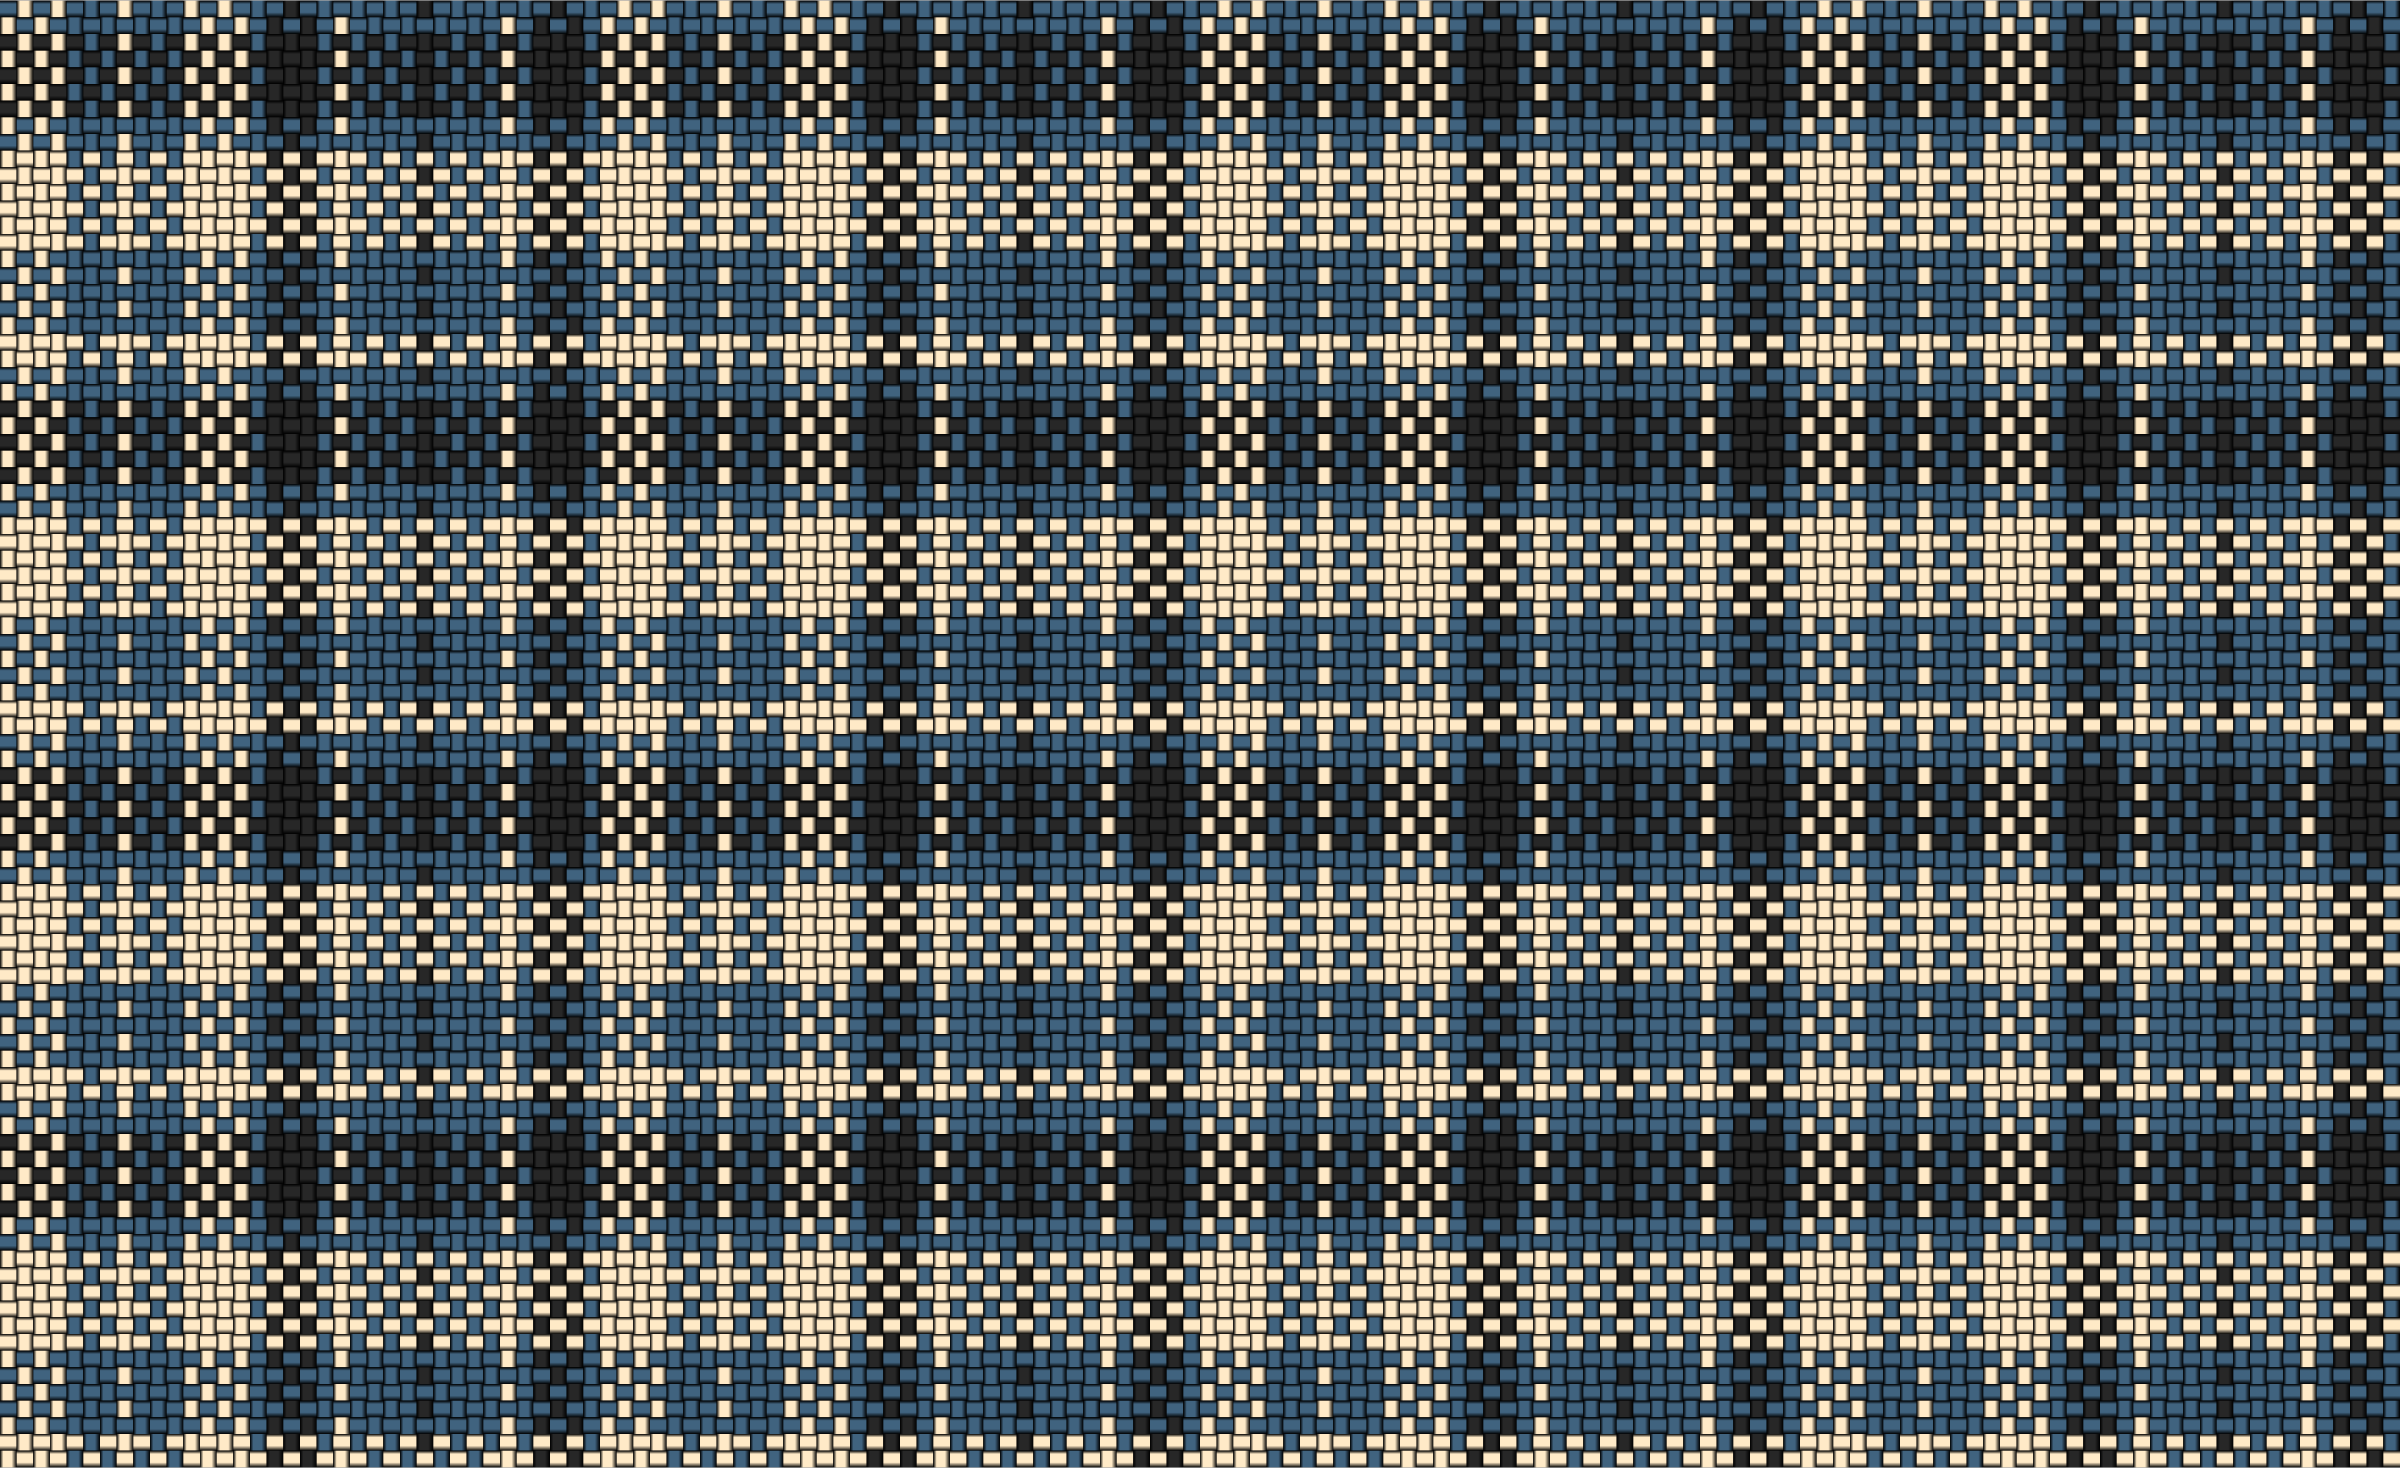 Woven Plaid Cloth Blue by gubrww2